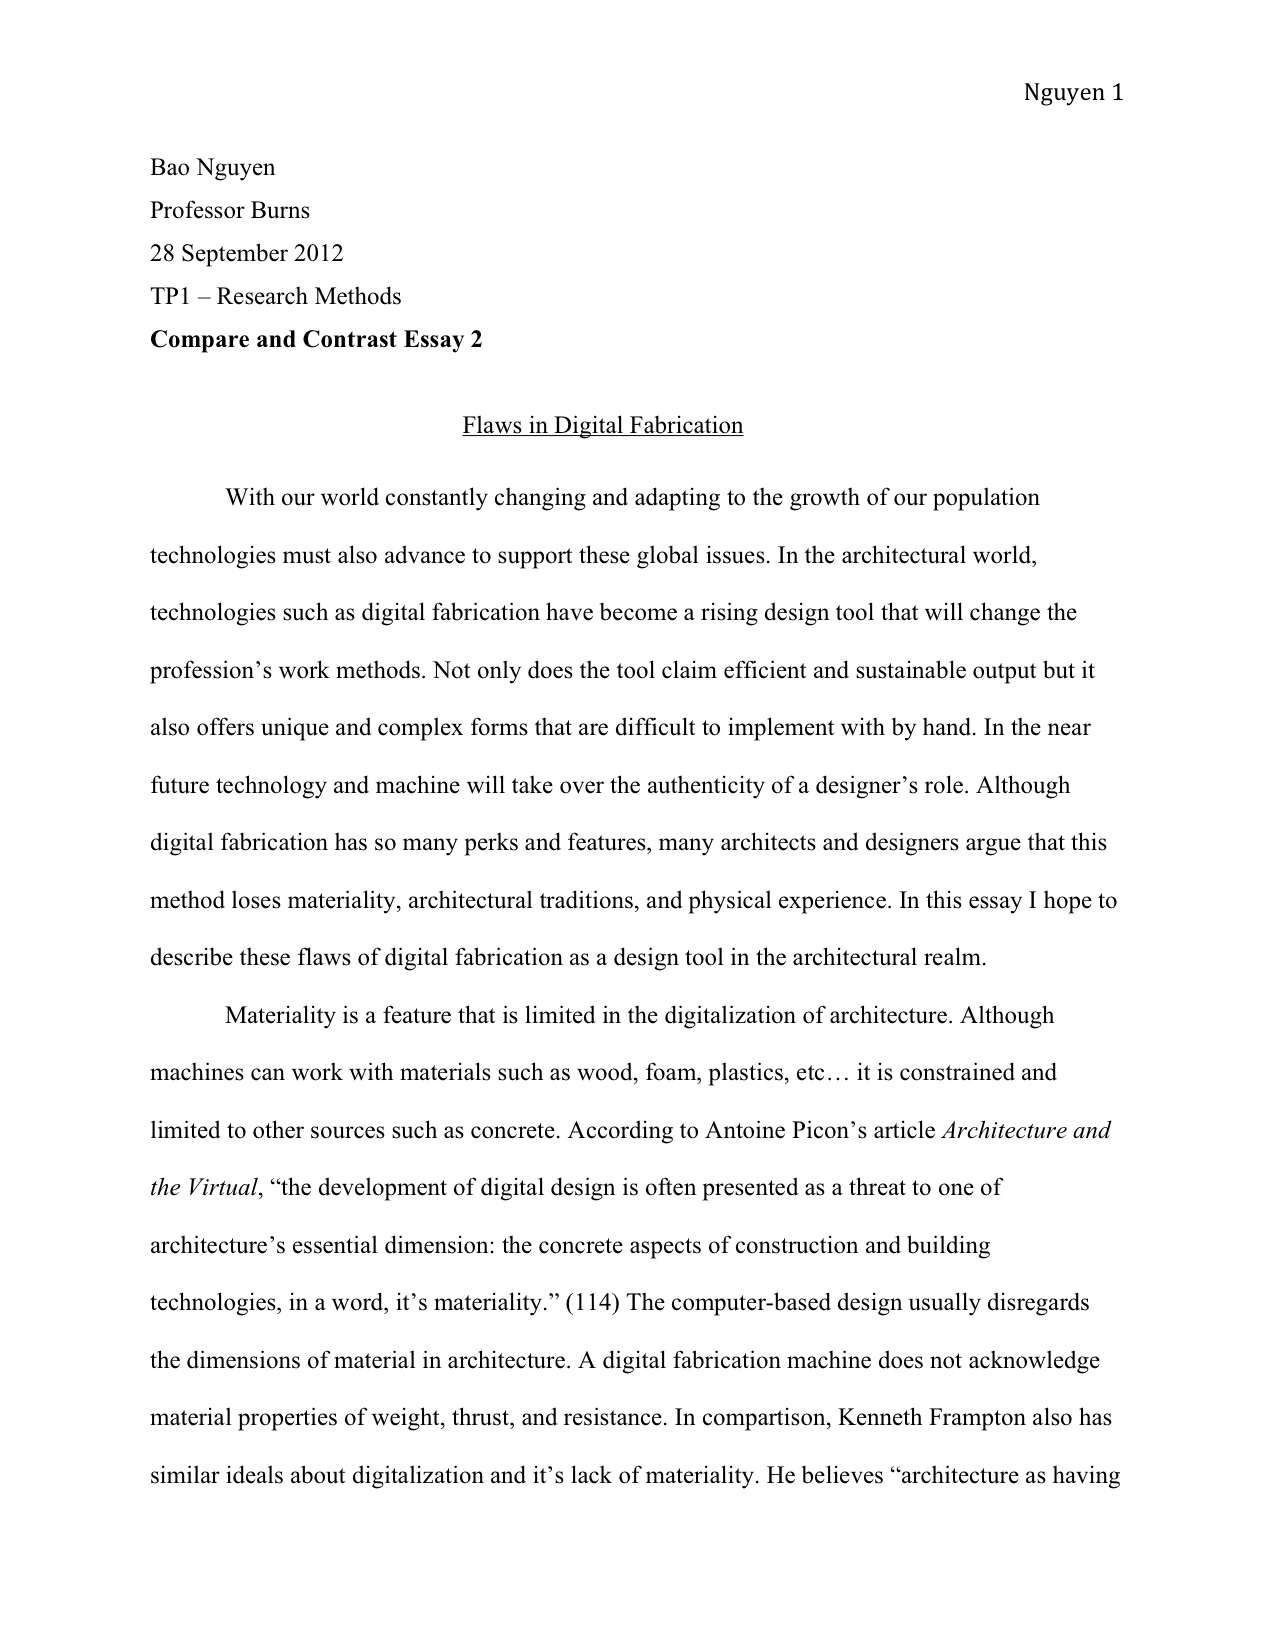 Advanced English Essay Analysis Essay Thesis Example Free Resume Samples Amp Writing Analysis  Essay Thesis Example Example Intro Paragraph Controversial Essay Topics For Research Paper also Healthy Foods Essay Comparison Essay Example Free Dissertation Research Outline  Proposal Essay Examples